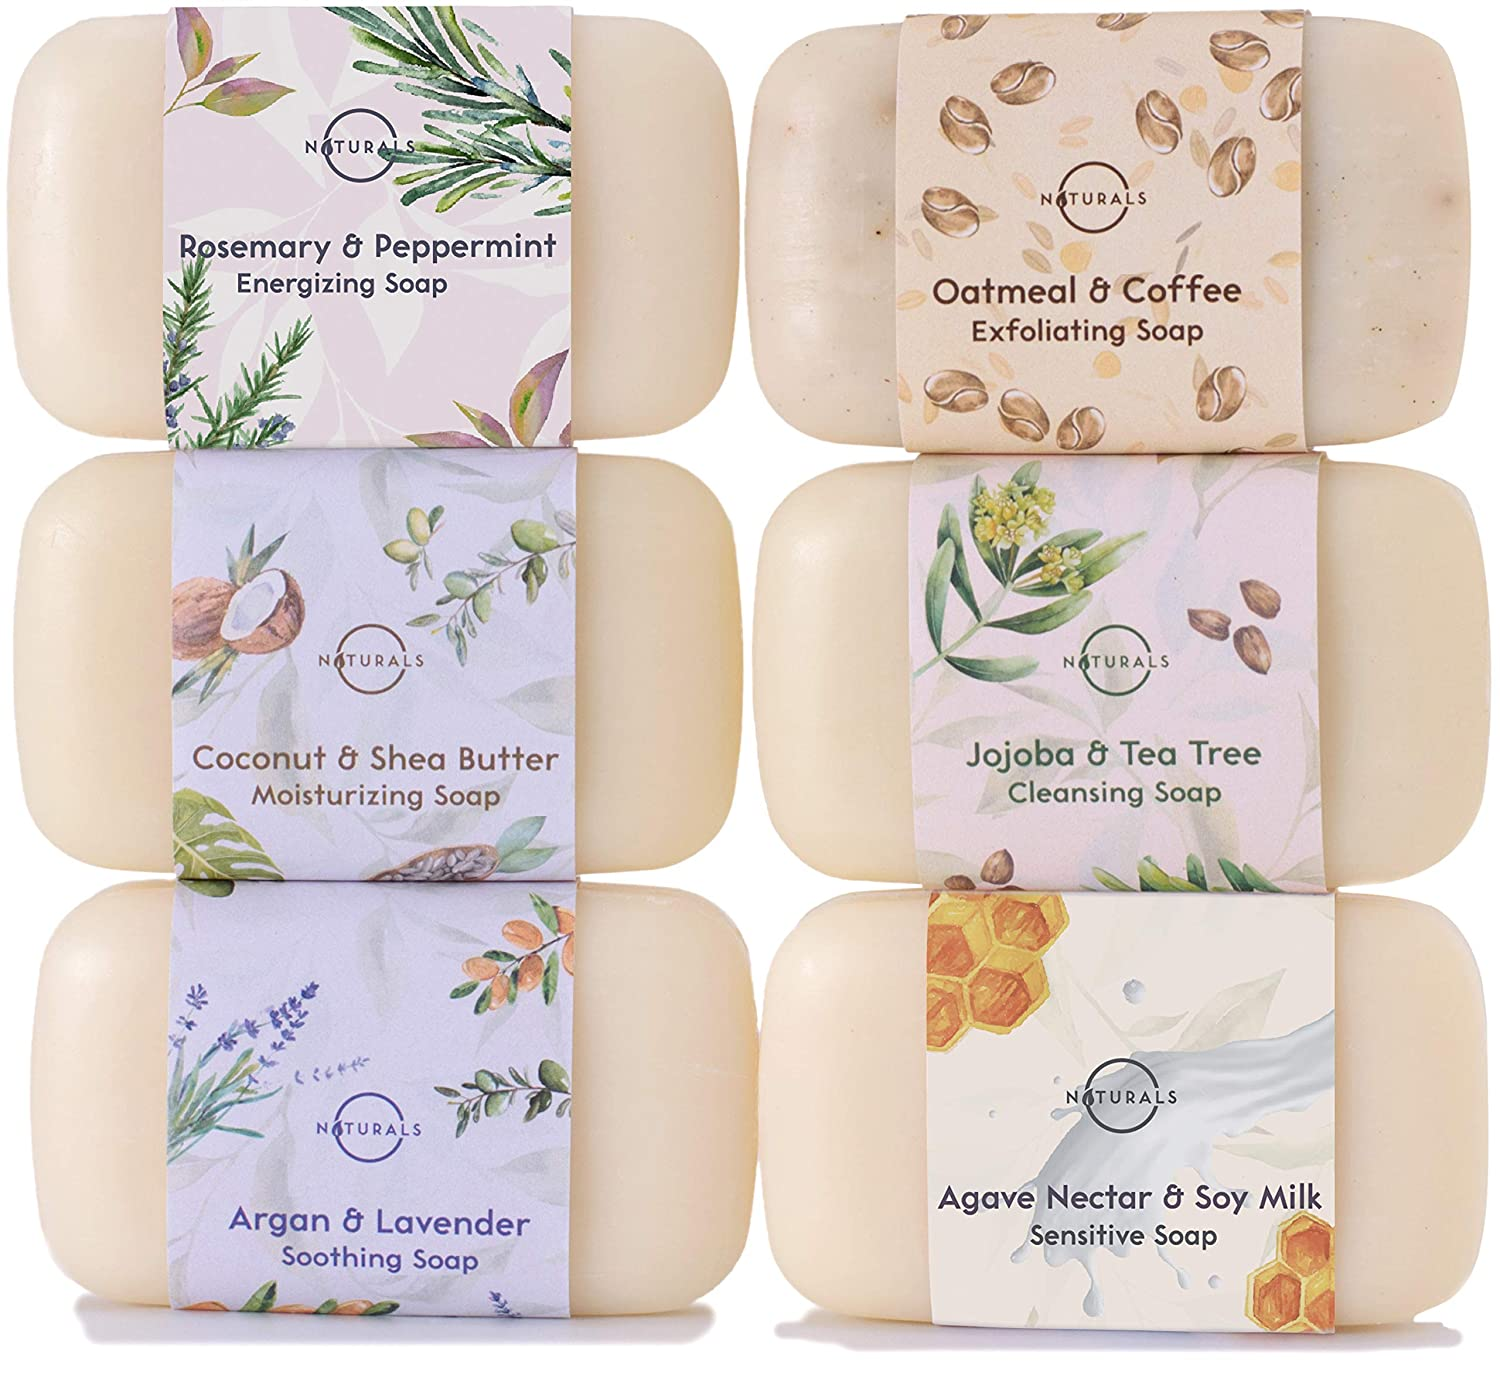 O Naturals 6 Piece Moisturizing Body Wash Bar Soap Collection